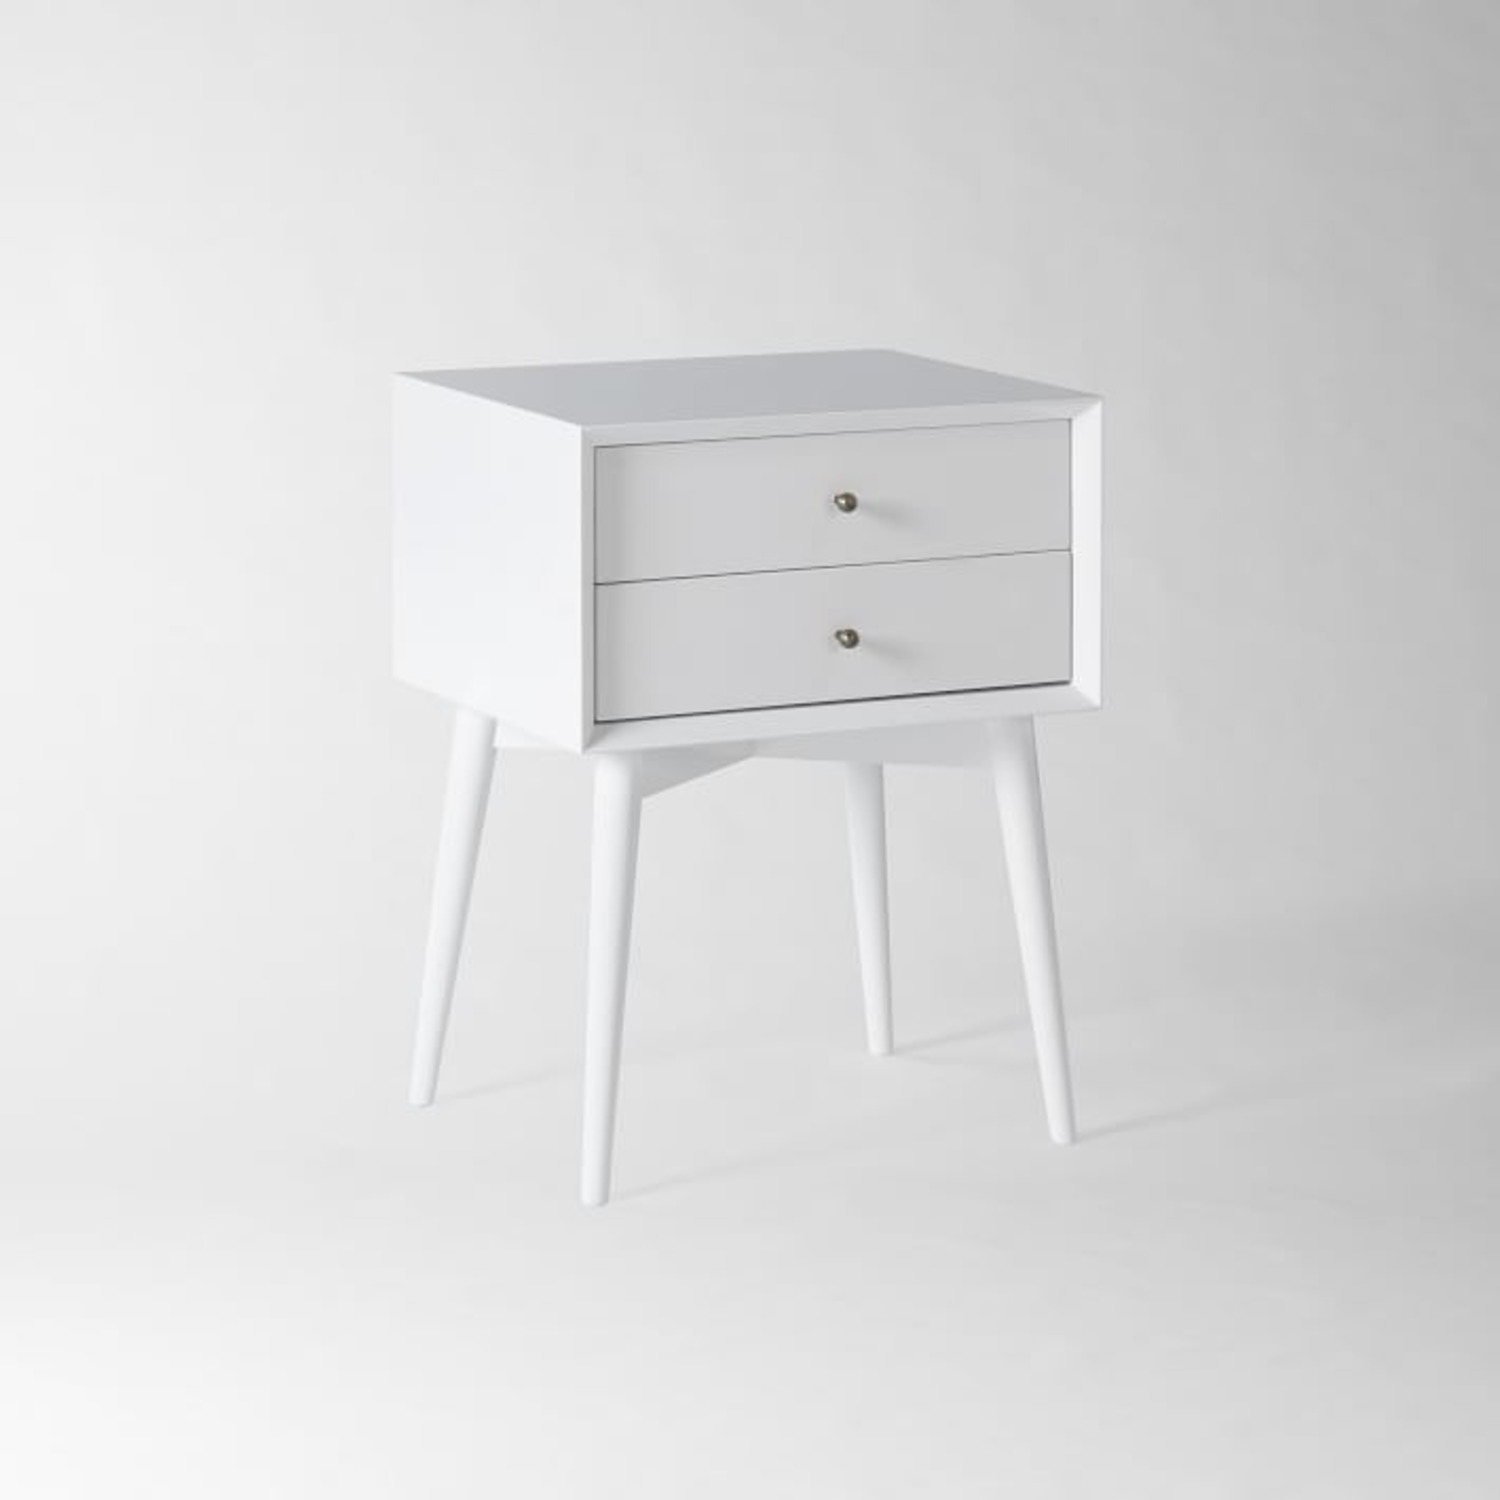 West Elm Mid-Century Nightstand, White Lacquer - image-2